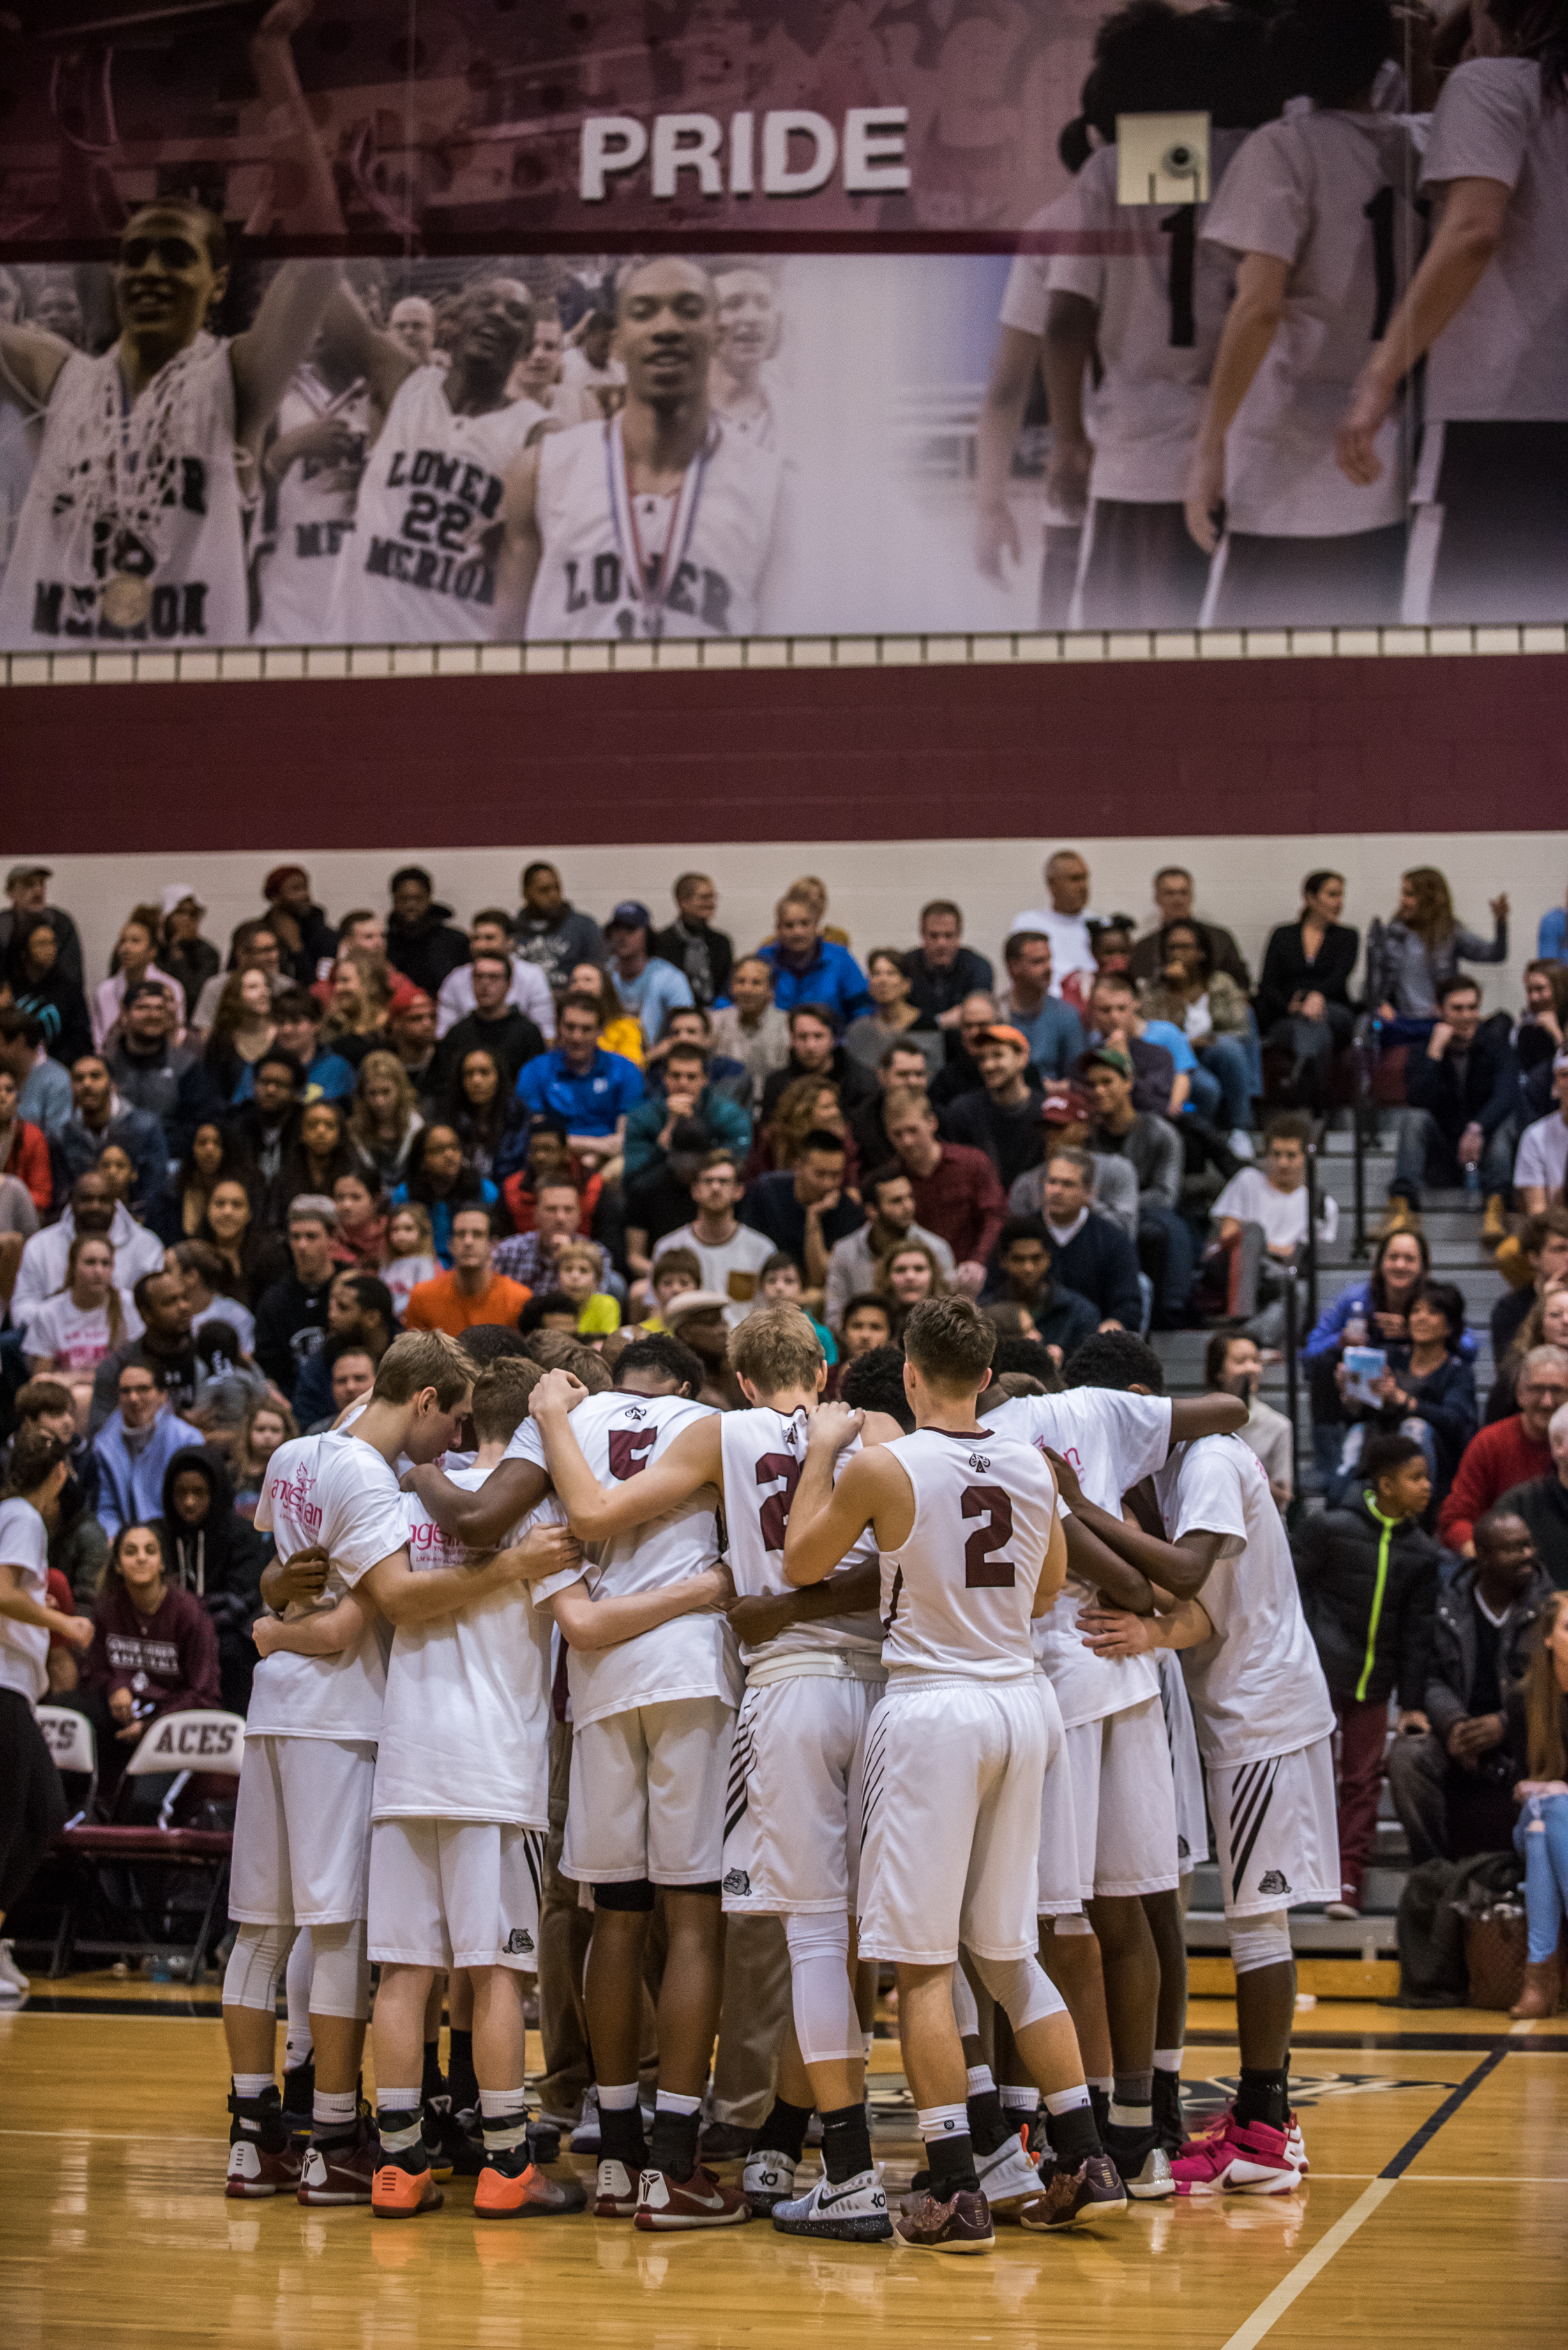 Lower_Merion_Basketball-31.jpg